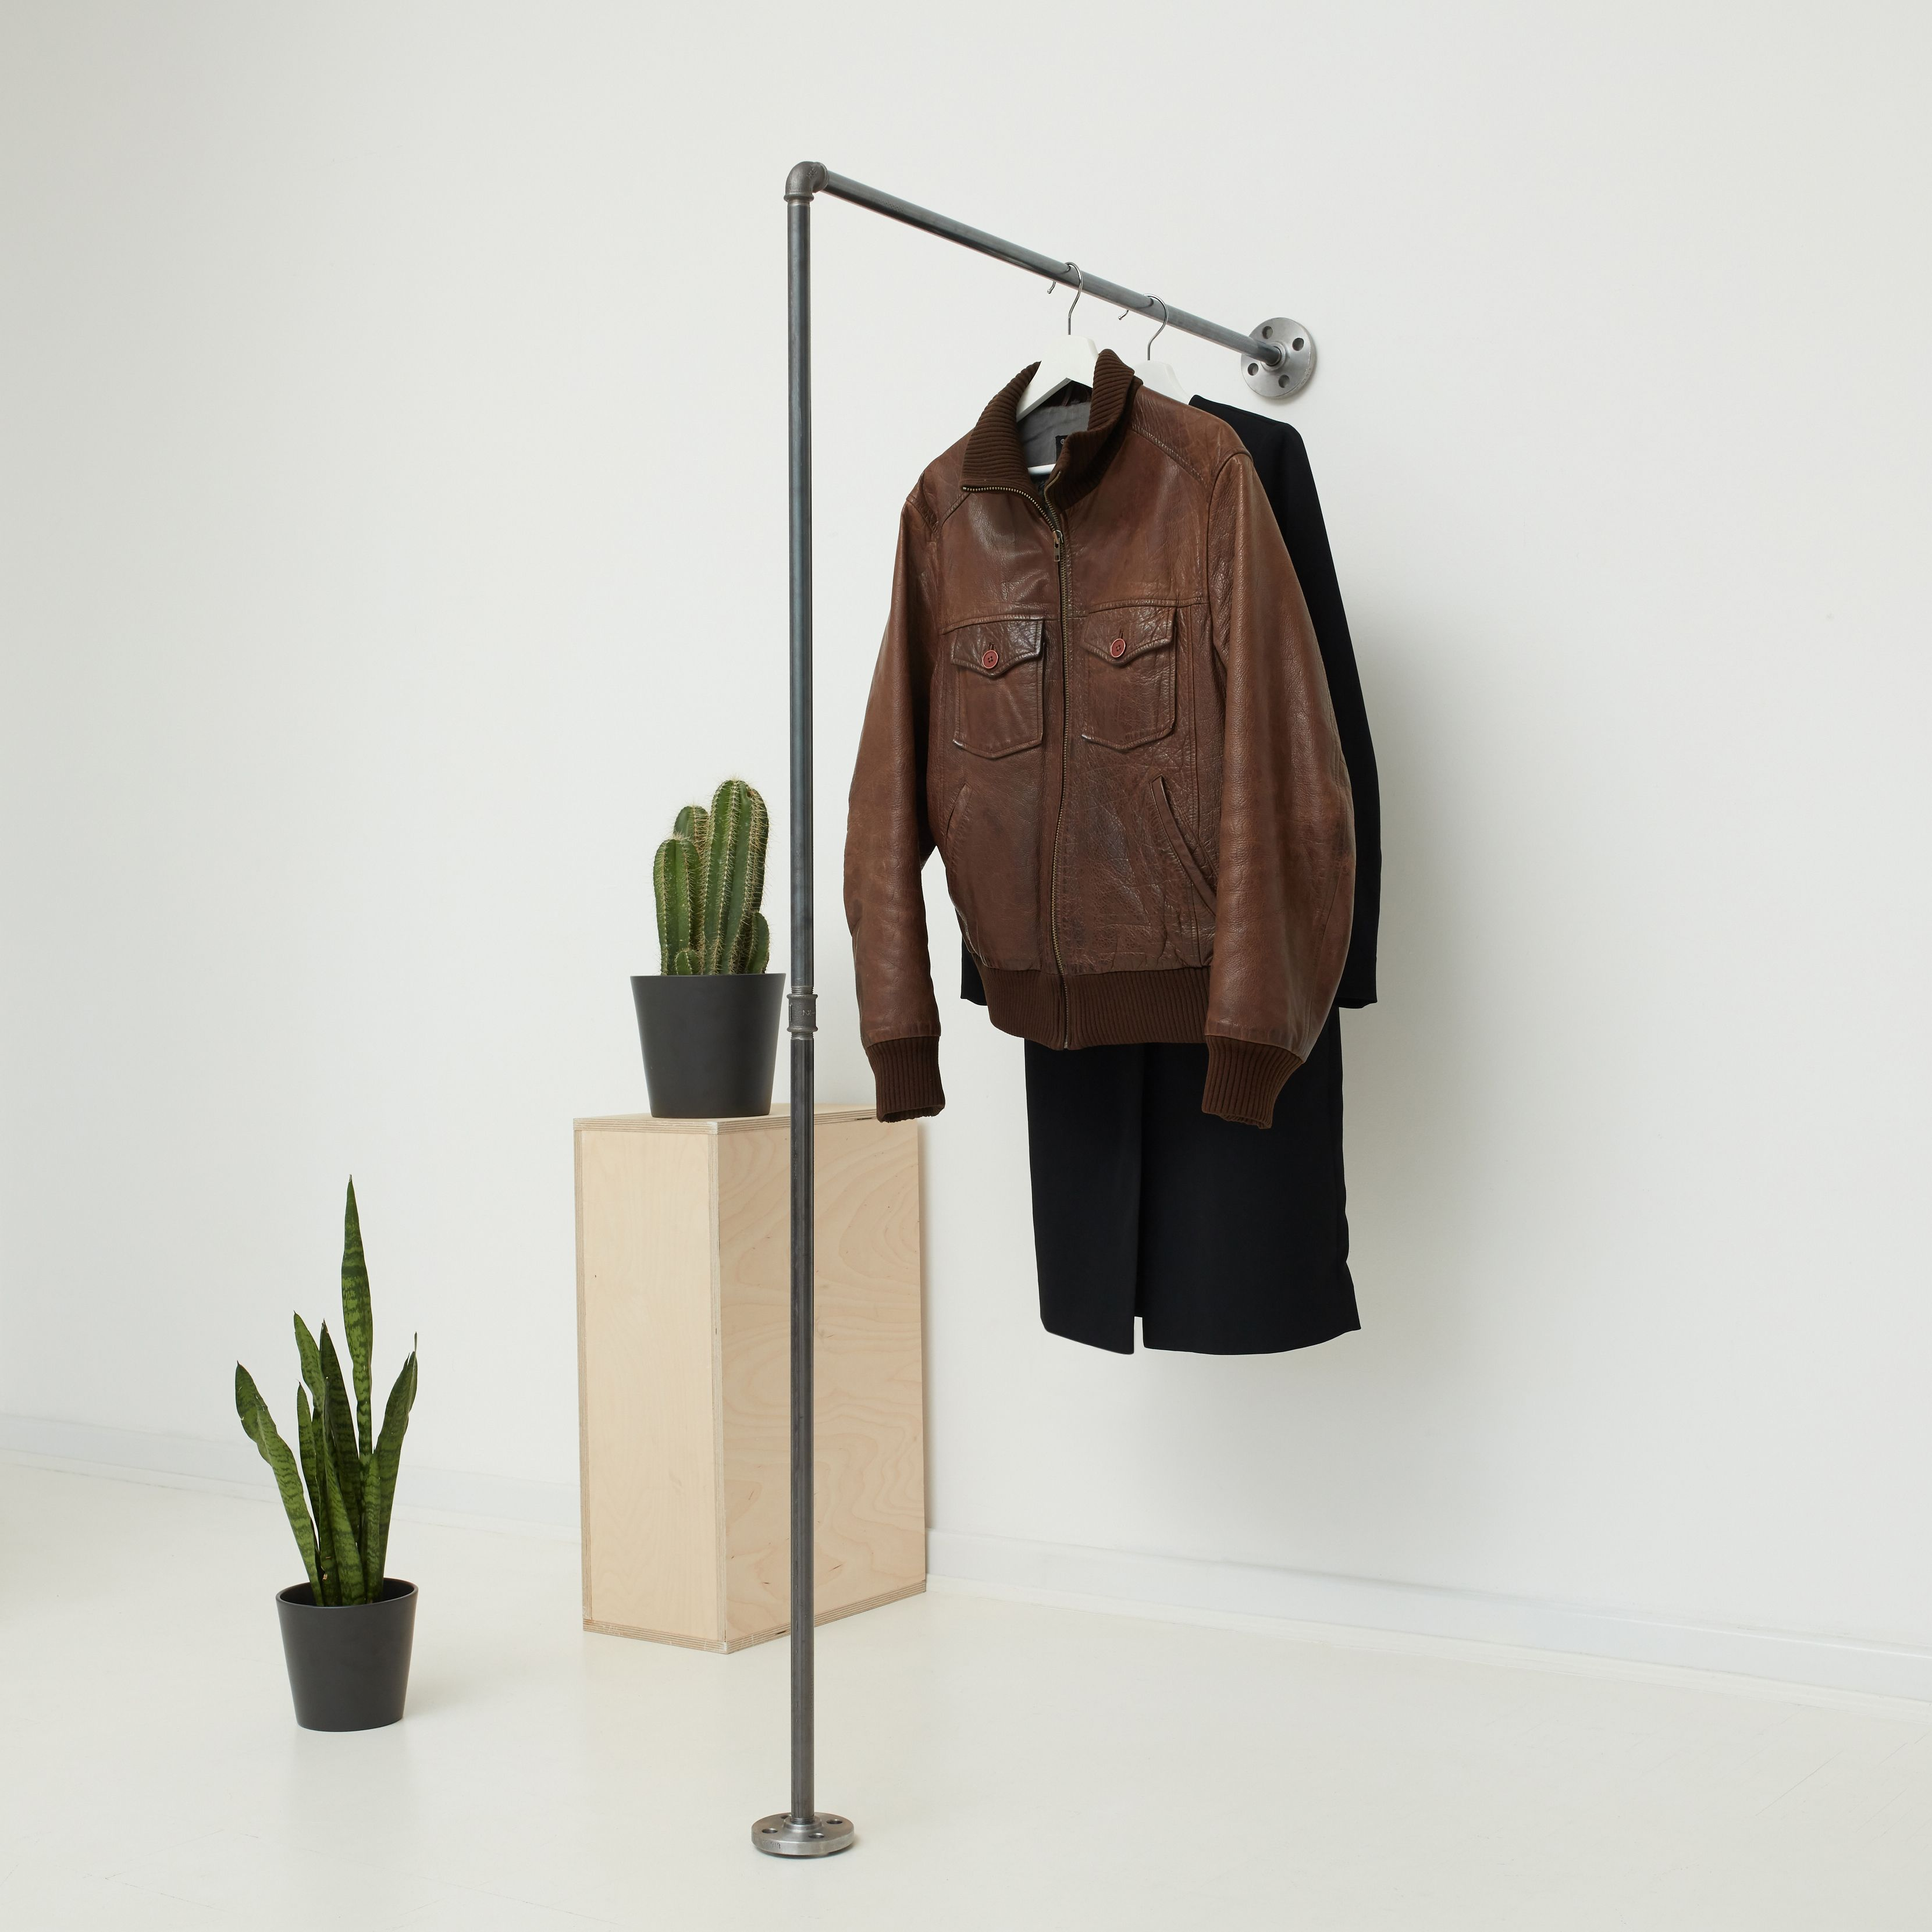 Garderobe Mit Schuhregal Garderobe Industrial Look Perfect People Would Wipe Their Bottoms